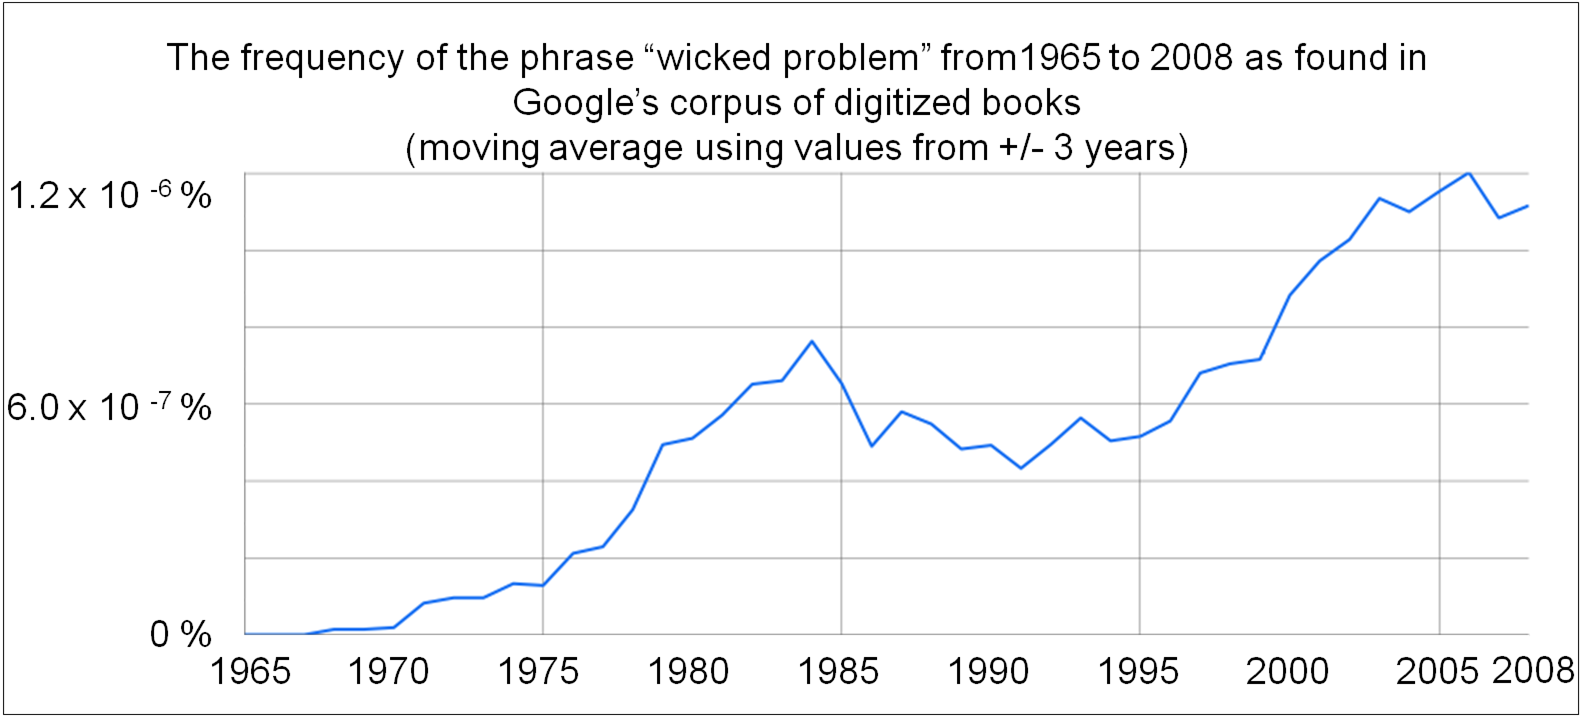 the wicked problem Wicked problems are not only usually complex, but they even resist defining solutions are not readily available, they require otherwise of thinking, but also need involvement of a variety of interested parties to work together.